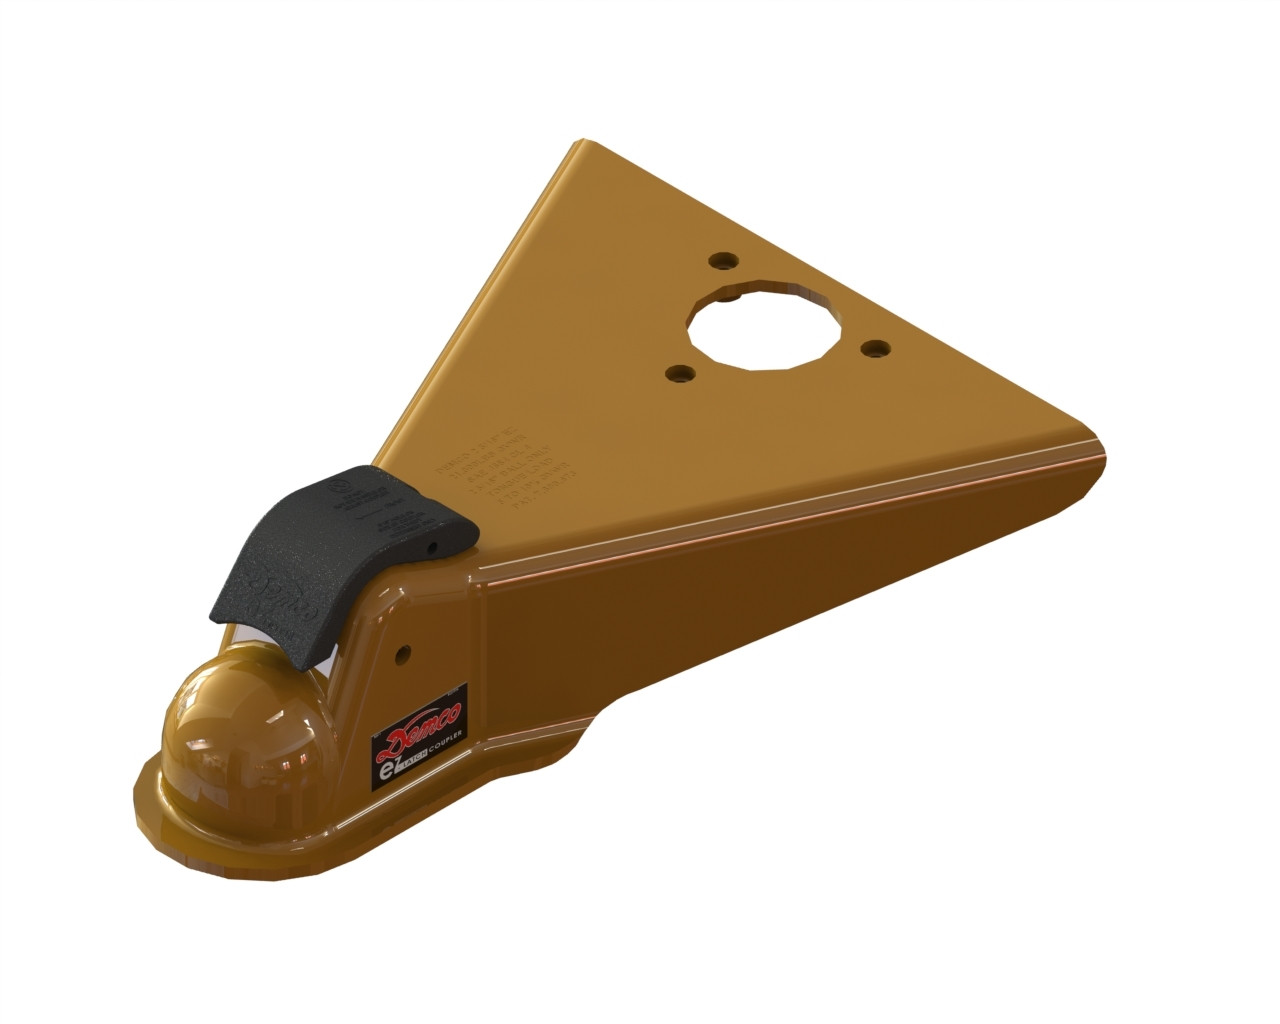 "16399-97 --- Demco eZ-Latch A-Frame Coupler - 12,500 lbs Capacity - 2-5/16"" - Primed"